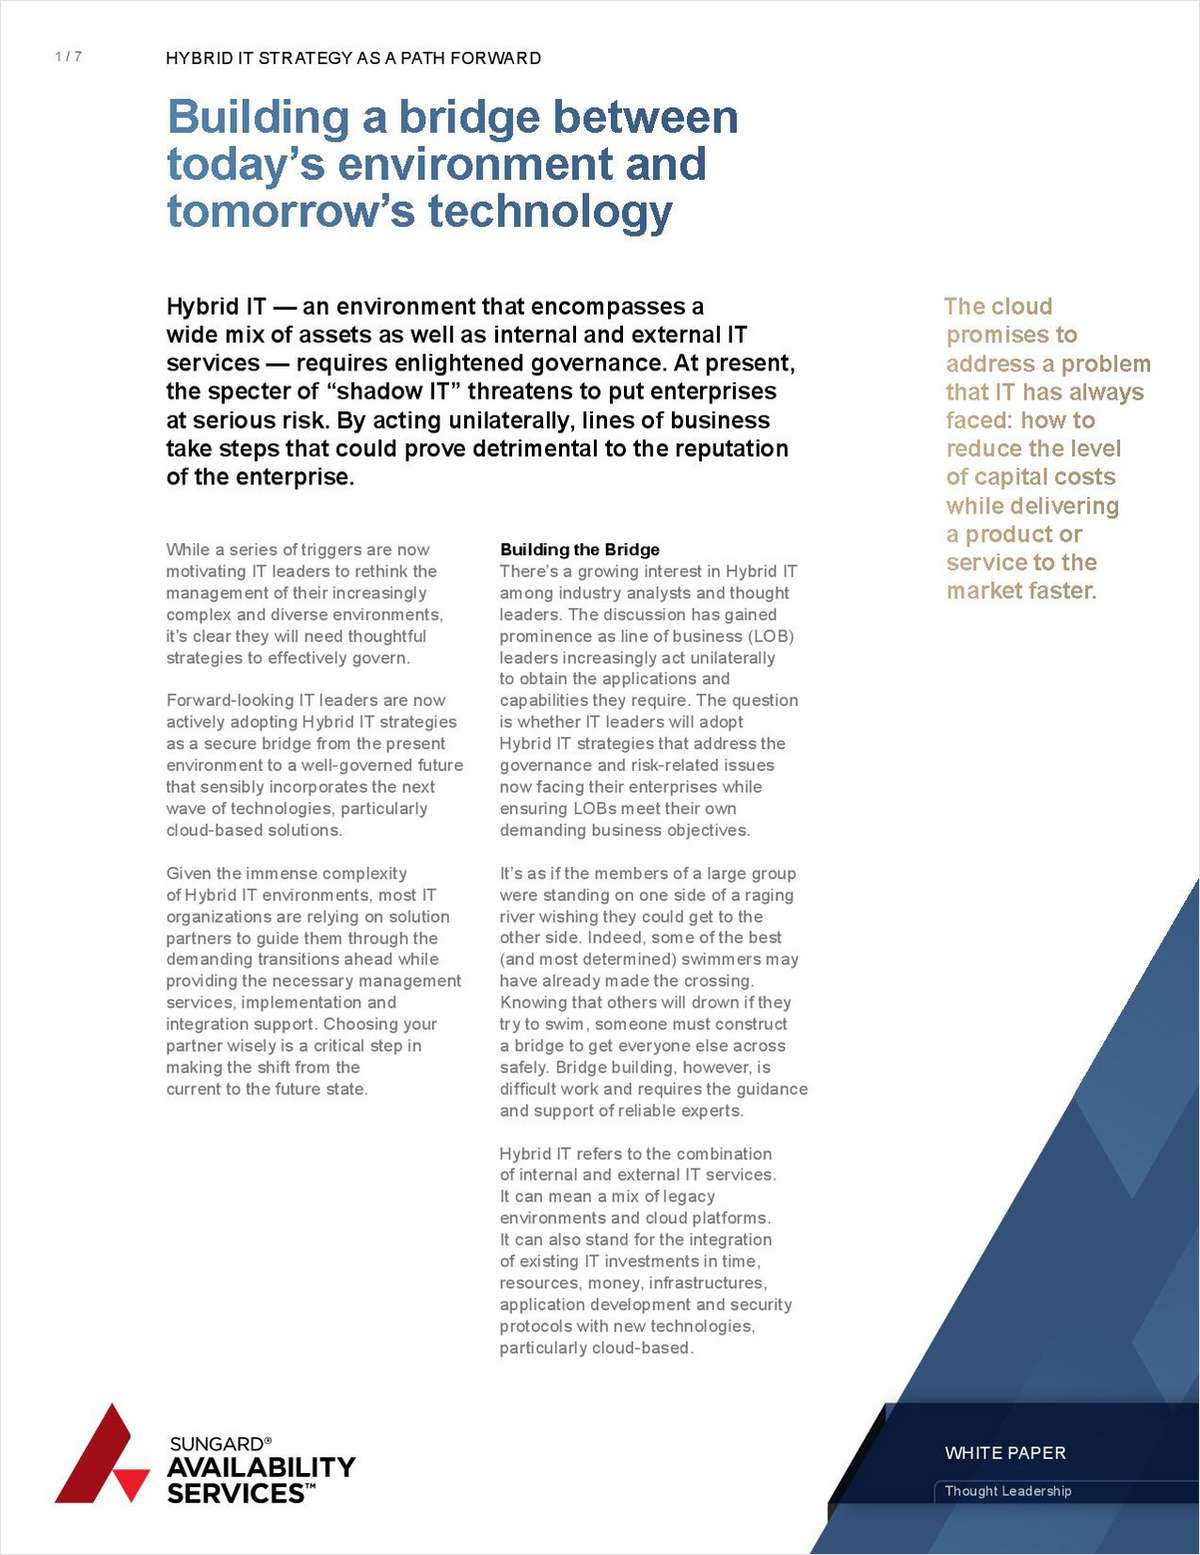 Why Hybrid IT Strategy is a Bridge Between Today's Environment and Tomorrow's Technology